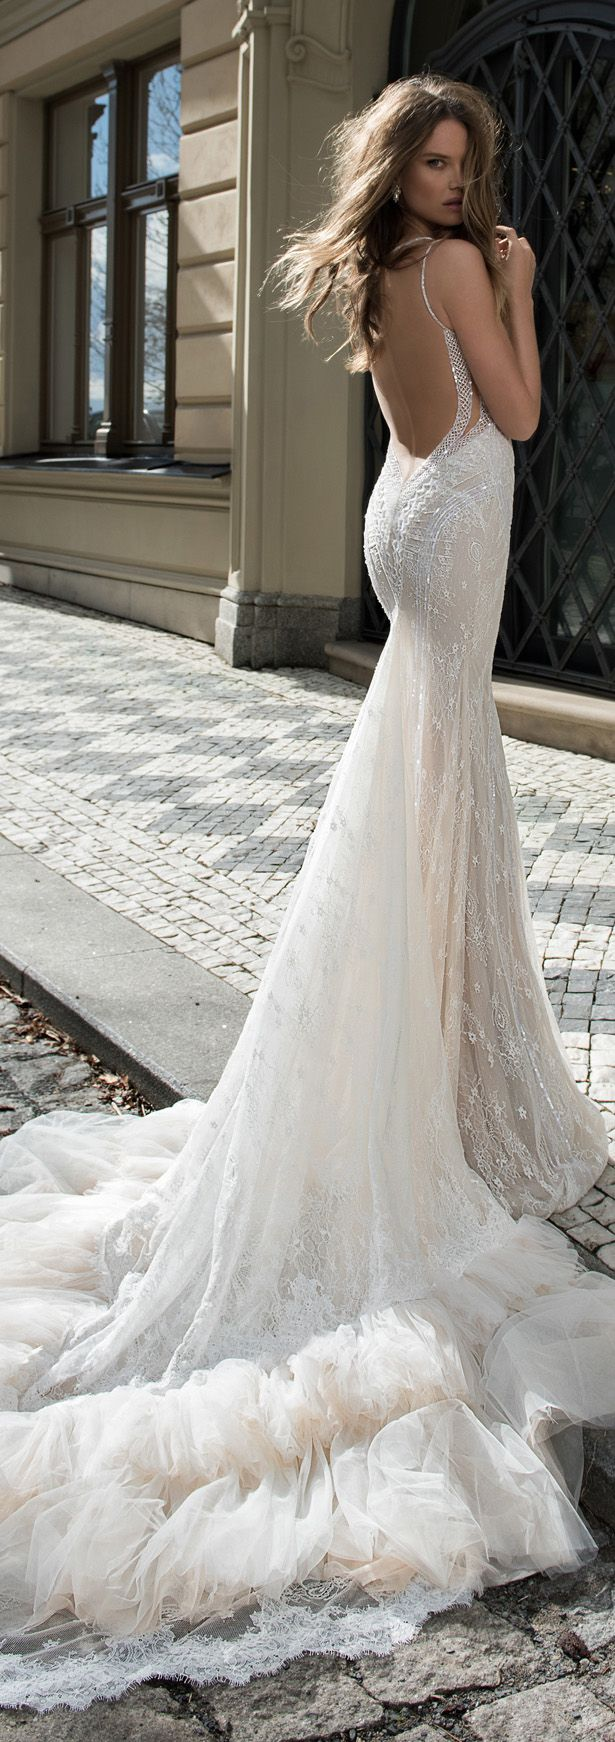 684 best Bridal Gowns All About the Train images on Pinterest